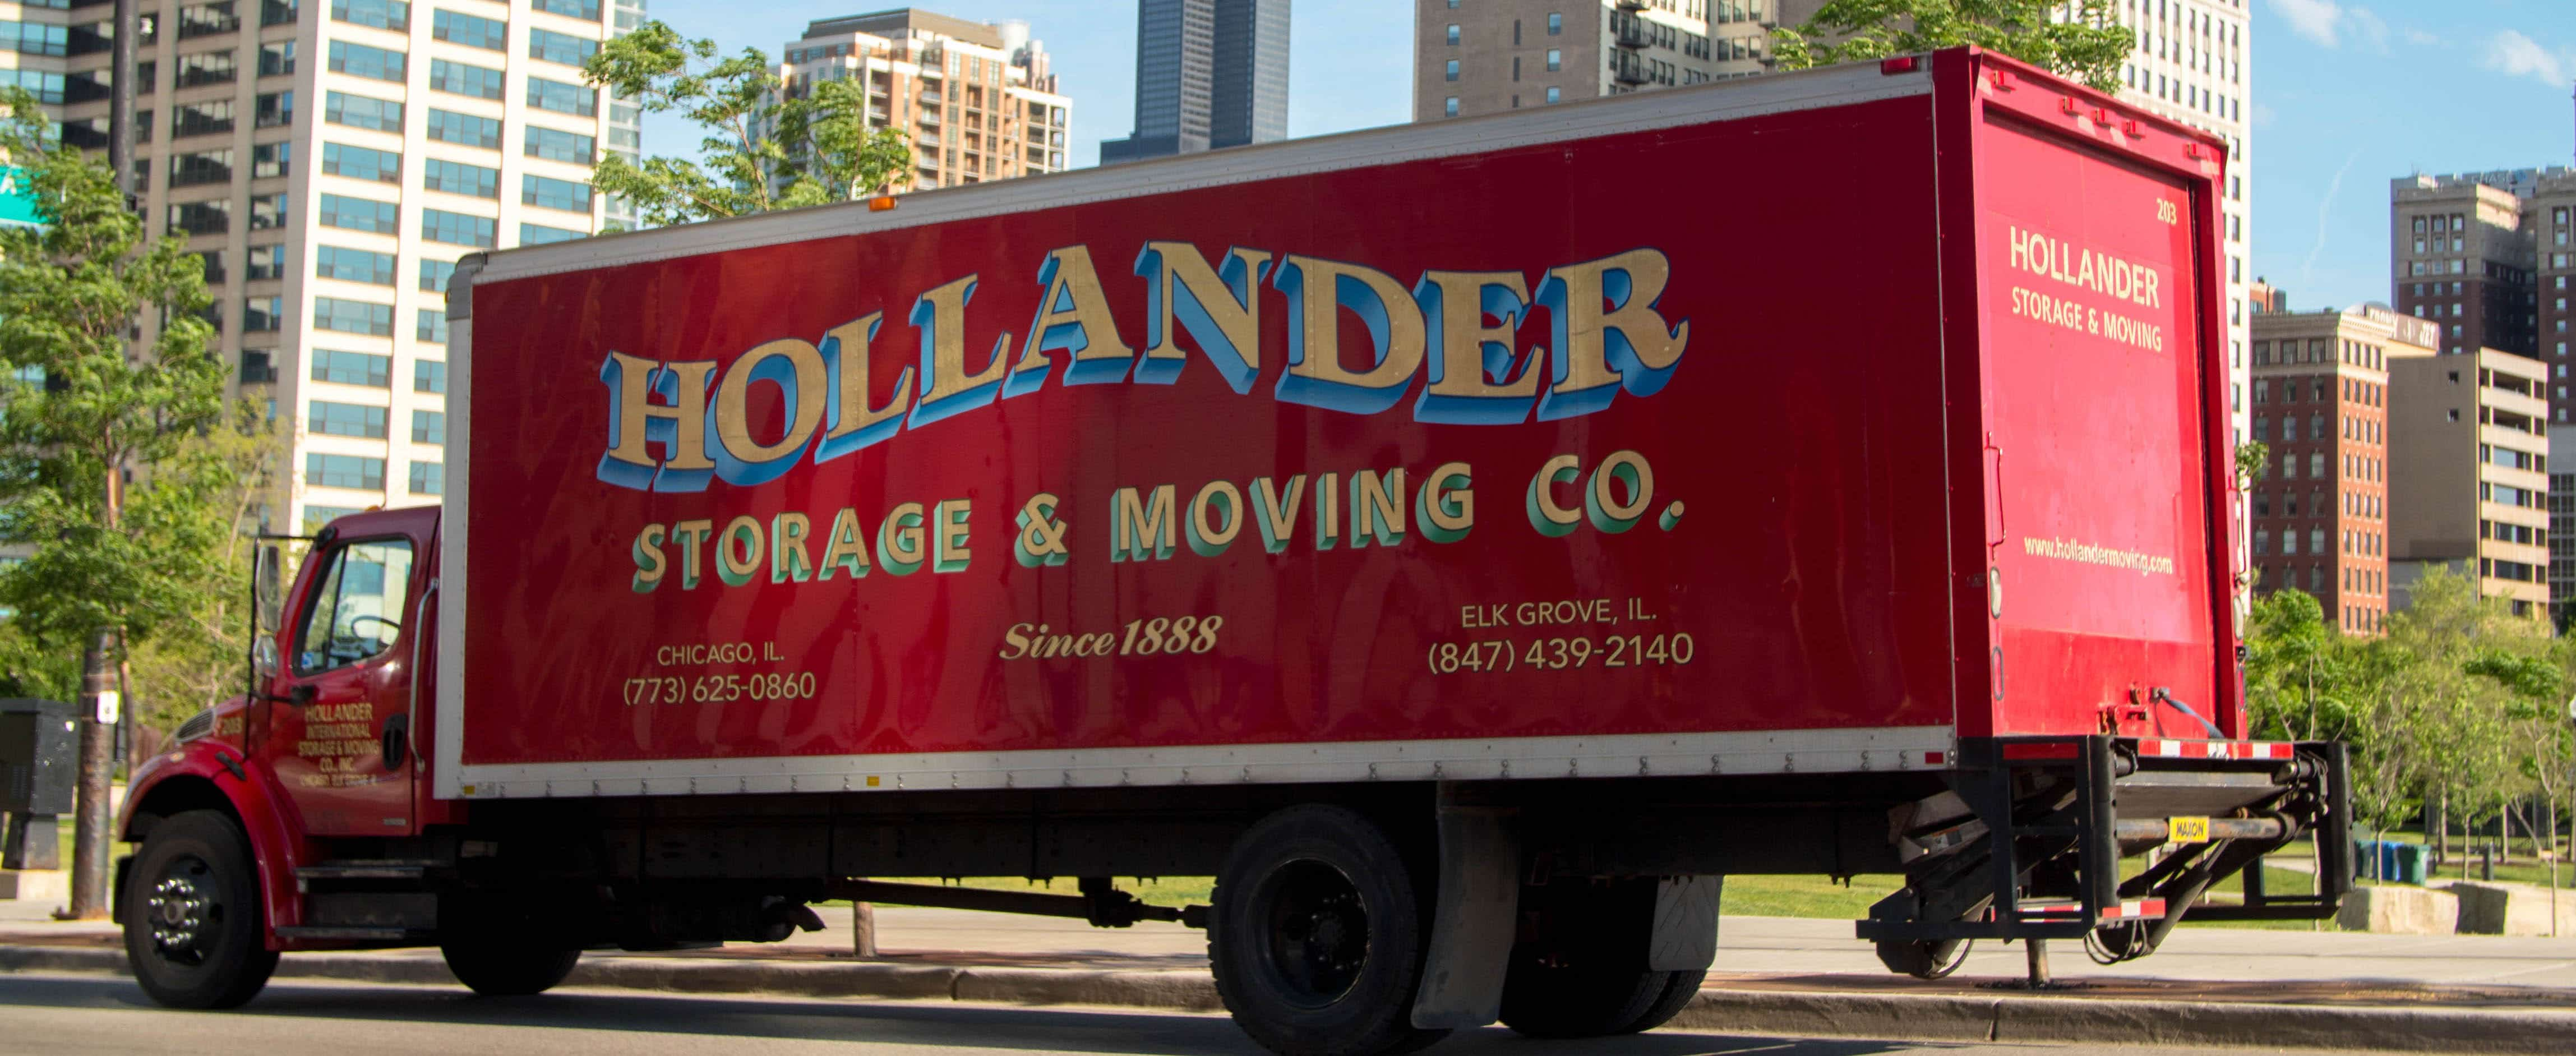 Hollander Chicago Movers Truck